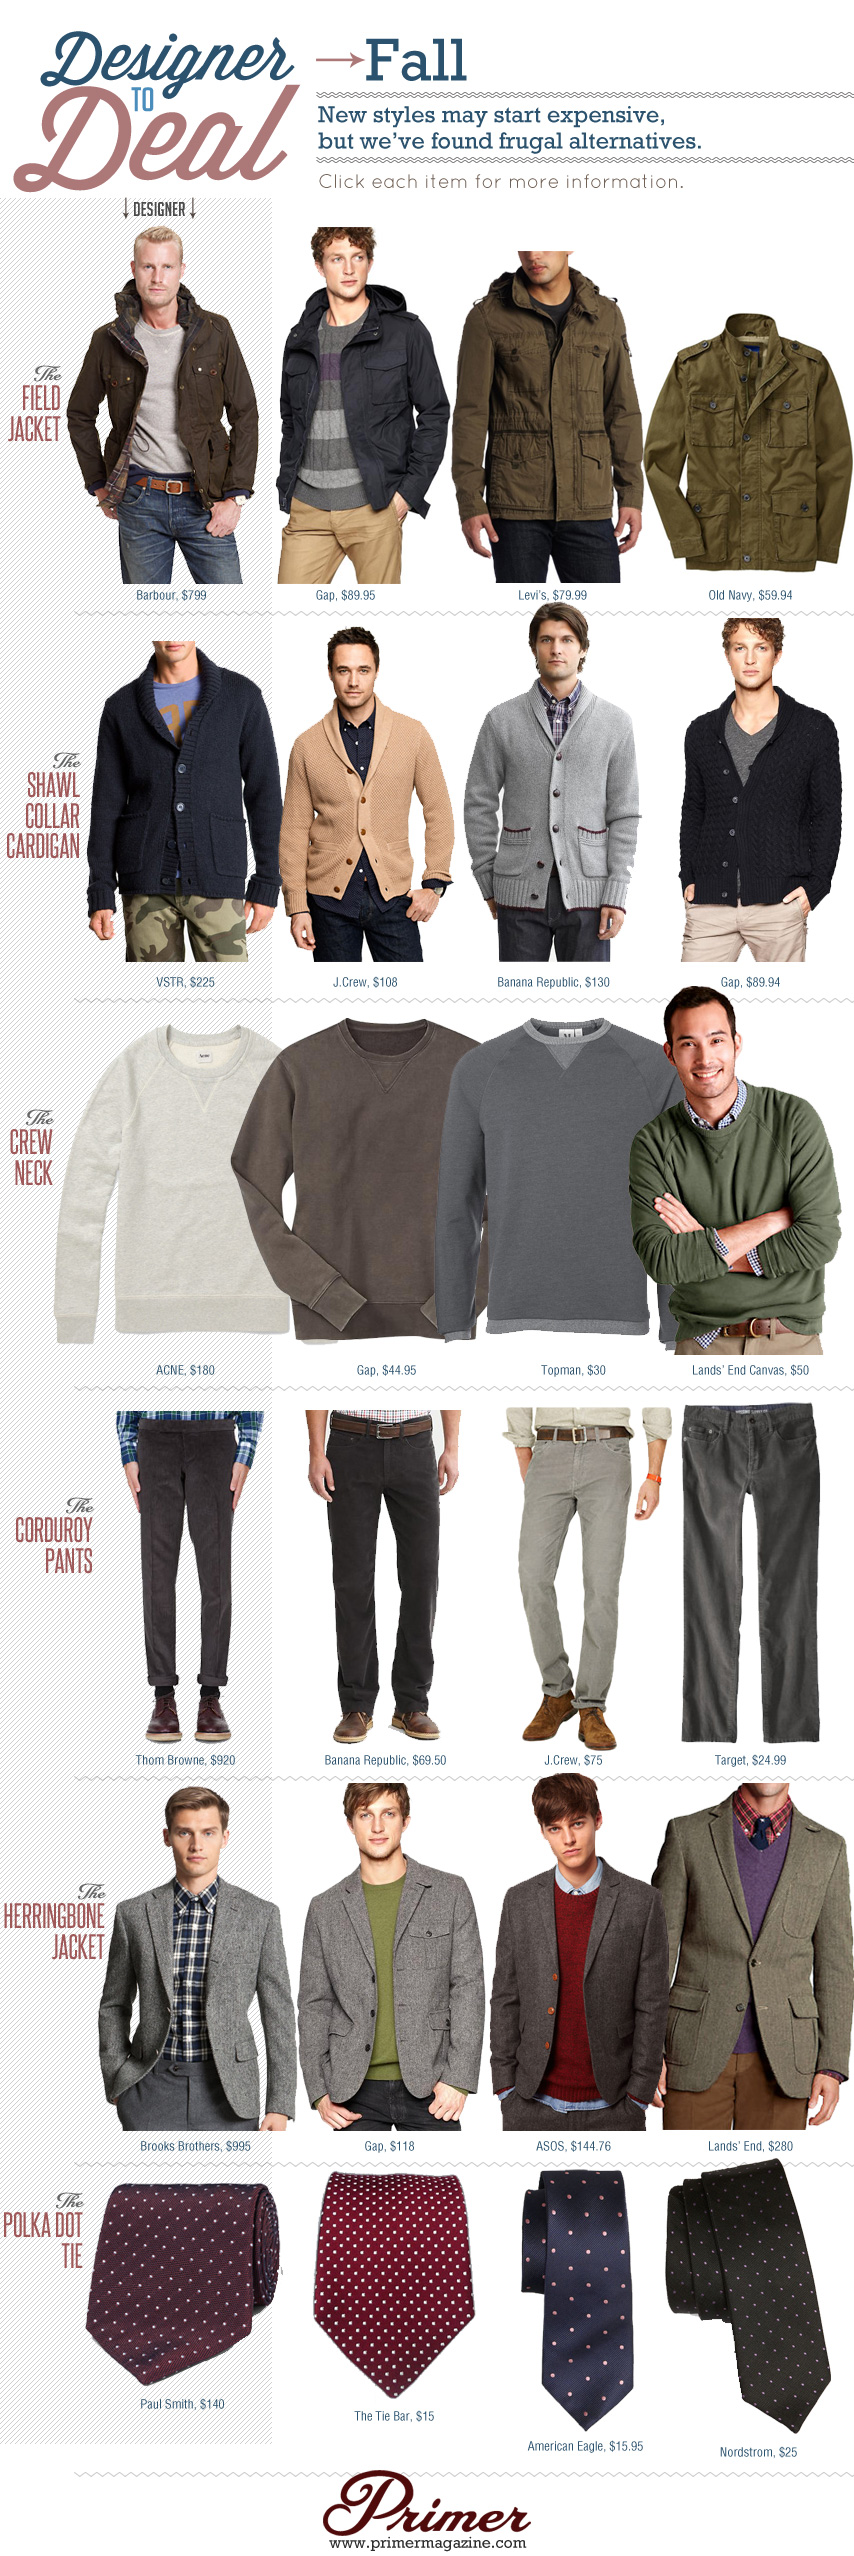 Designer to Deal collage of jackets, sweaters, pants and more